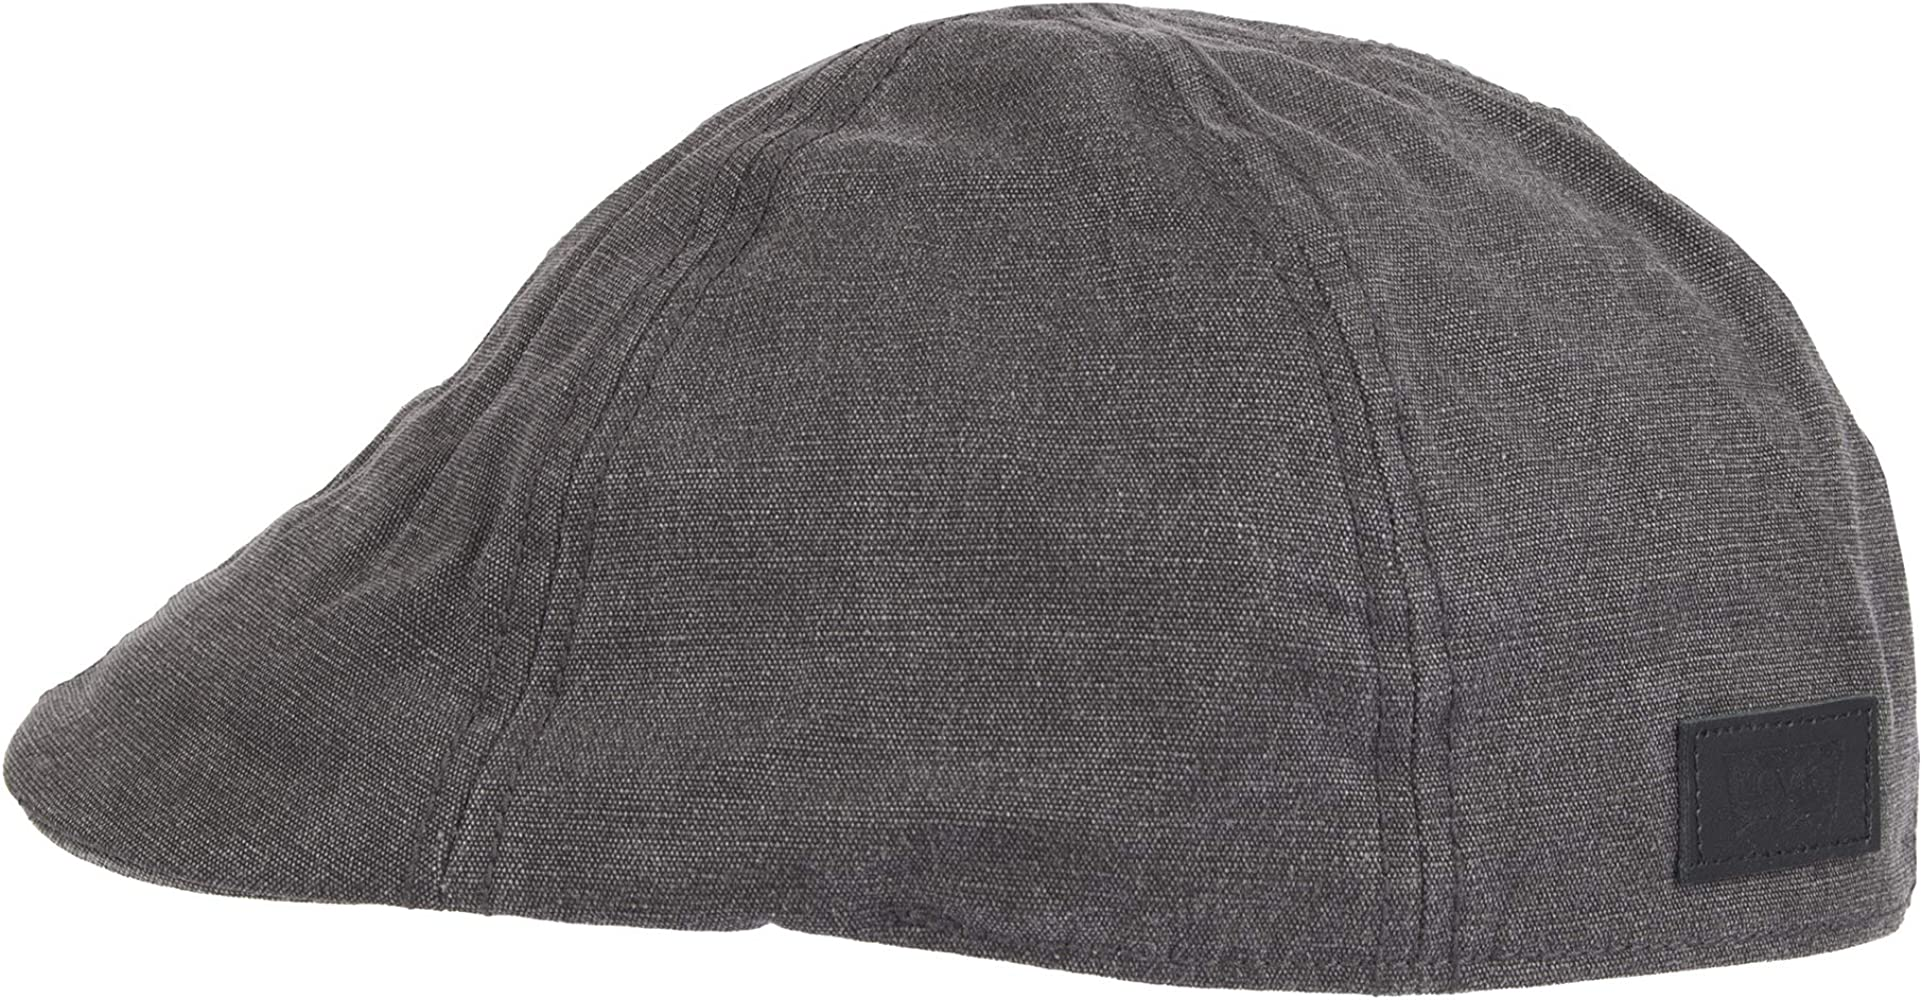 Qunson Men/'s Duckbill Ivy Newsboy Cap Scally Hat